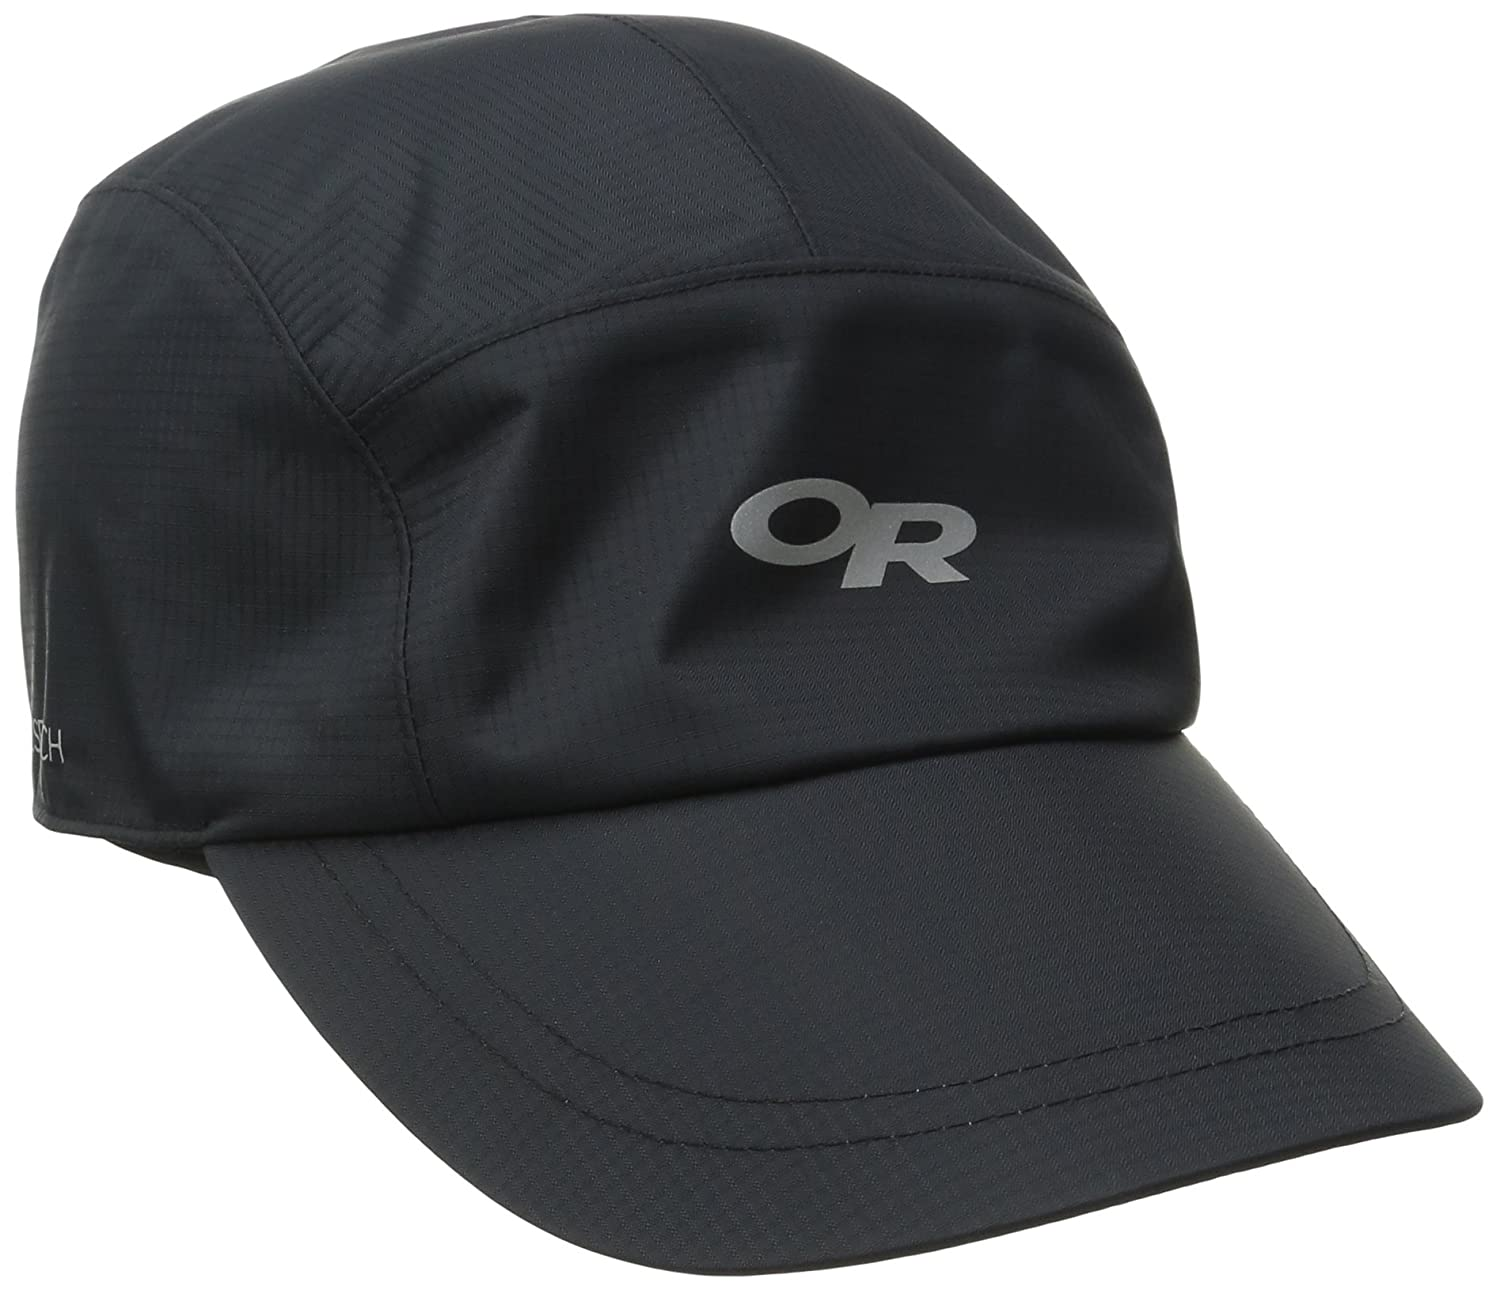 96c996648acd34 Amazon.com: Outdoor Research Halo Rain Cap: Clothing